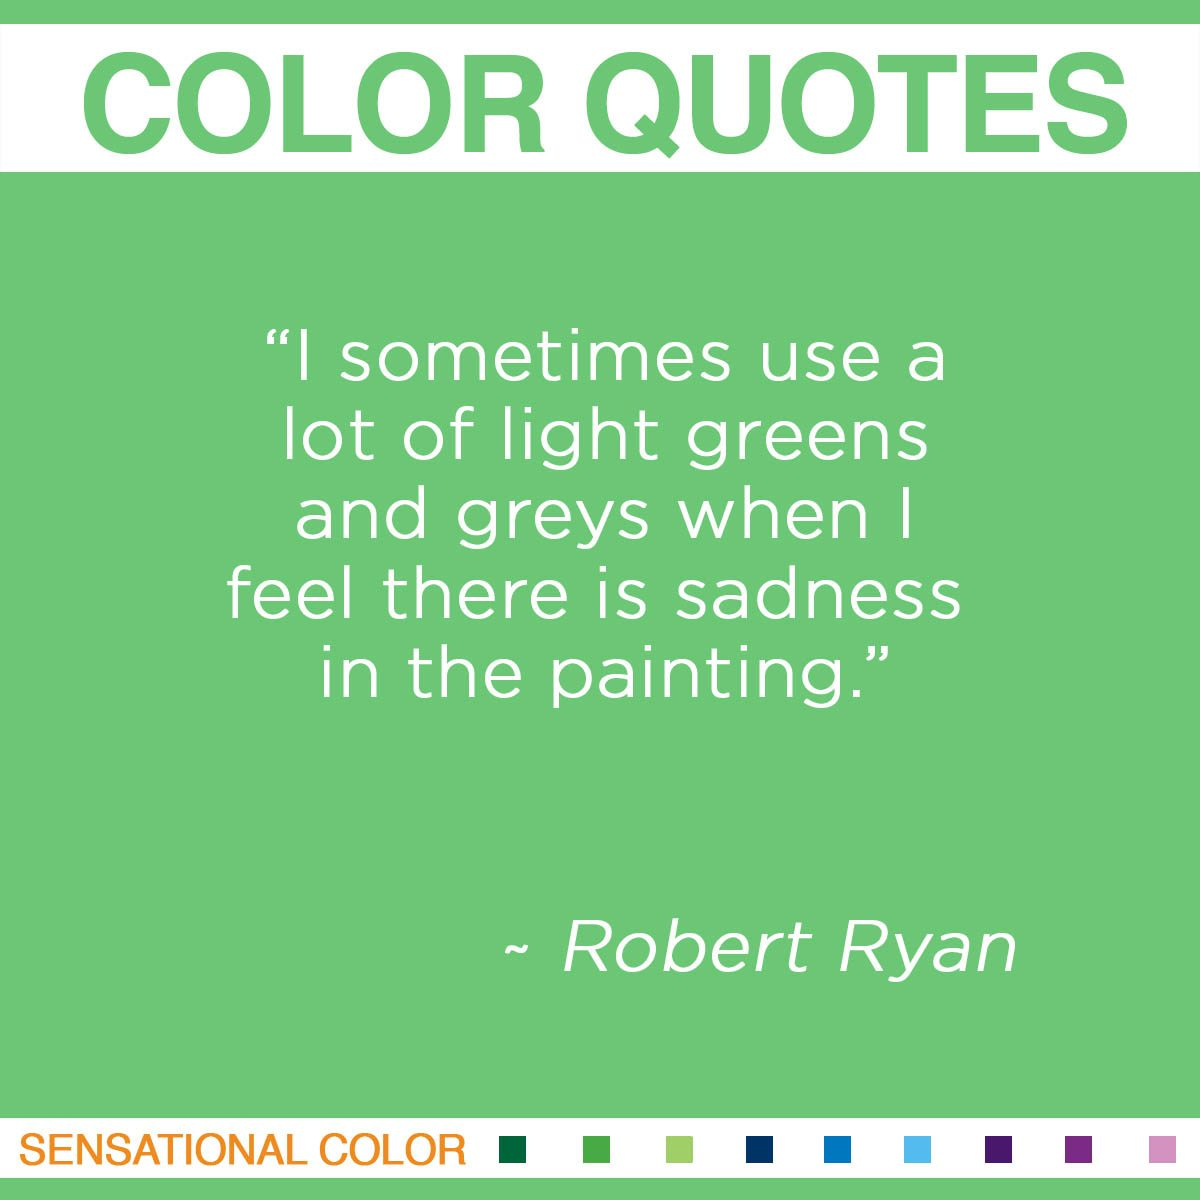 """I sometimes use a lot of light greens and greys when I feel there is sadness in the painting."" - Robert Ryan"